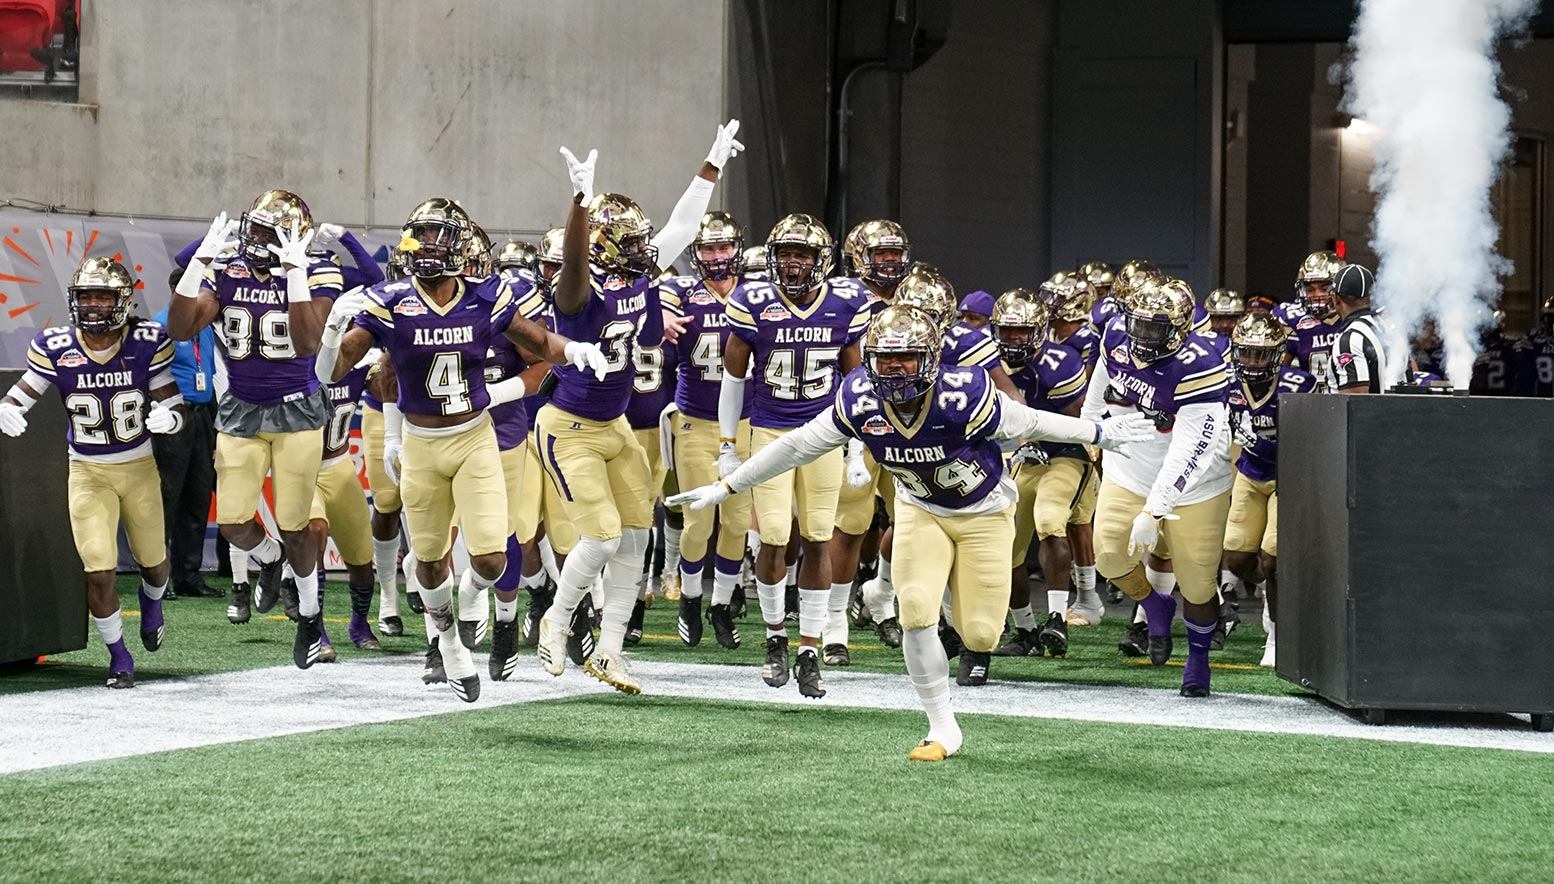 Grind City Media Mikecheck No Two Ways About It Alcorn State Is The Best Team In Hbcu Football This Season